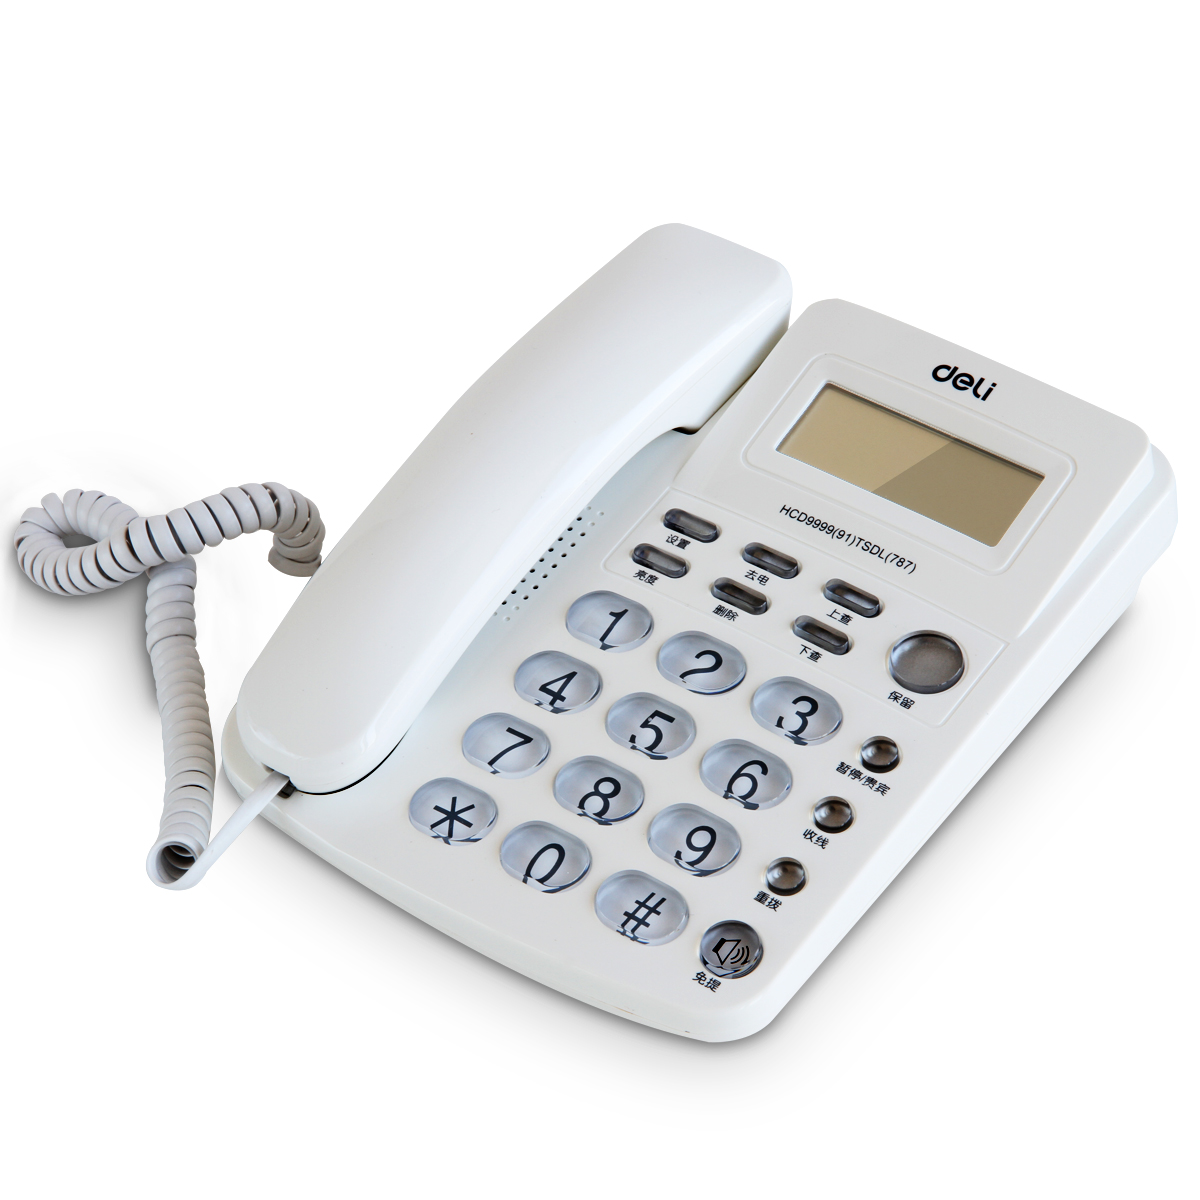 Deli deli 787 white crystal buttons office caller id telephone landline home phone business